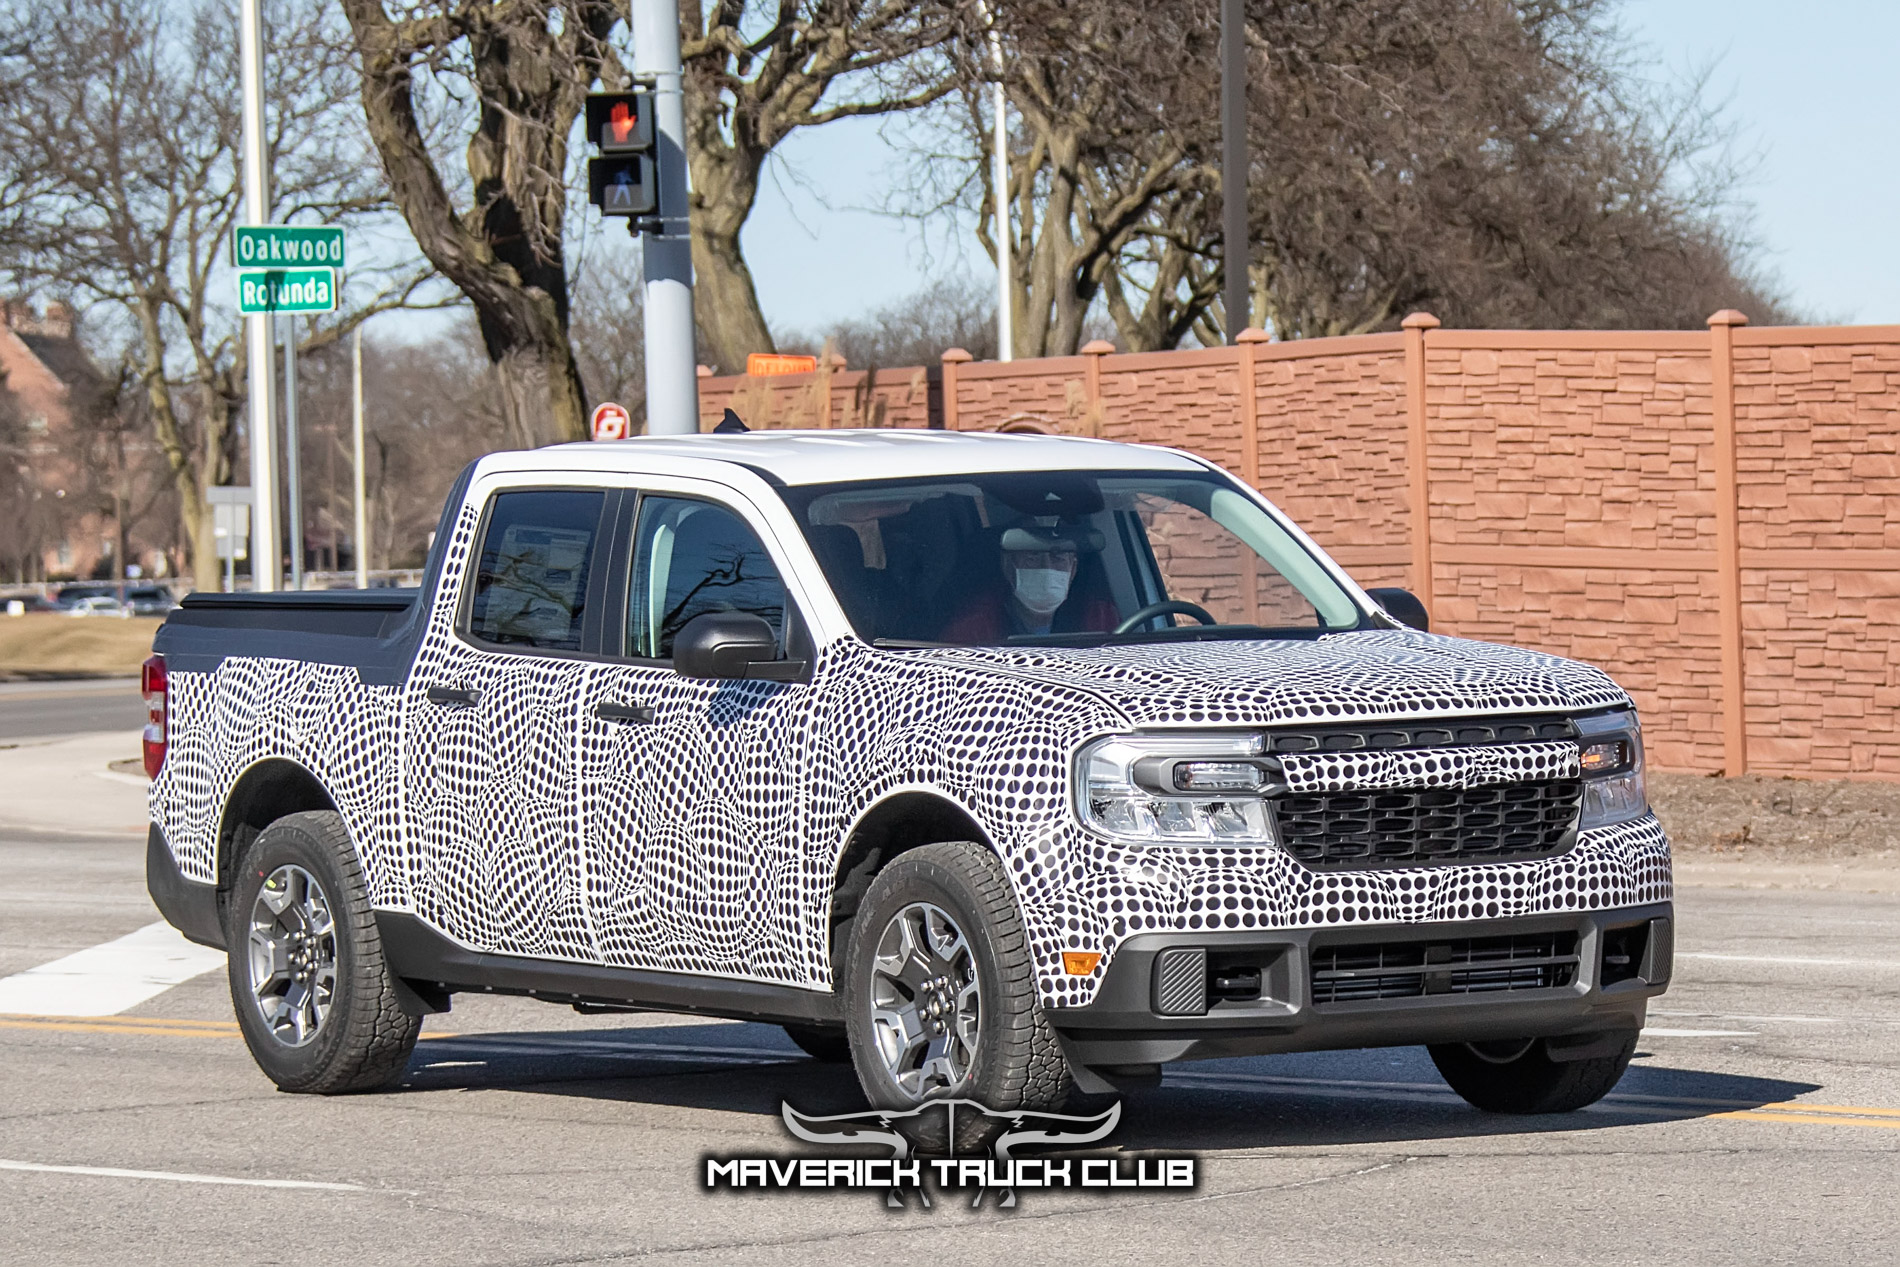 2022 Ford Maverick Pickup Spied 6.jpg